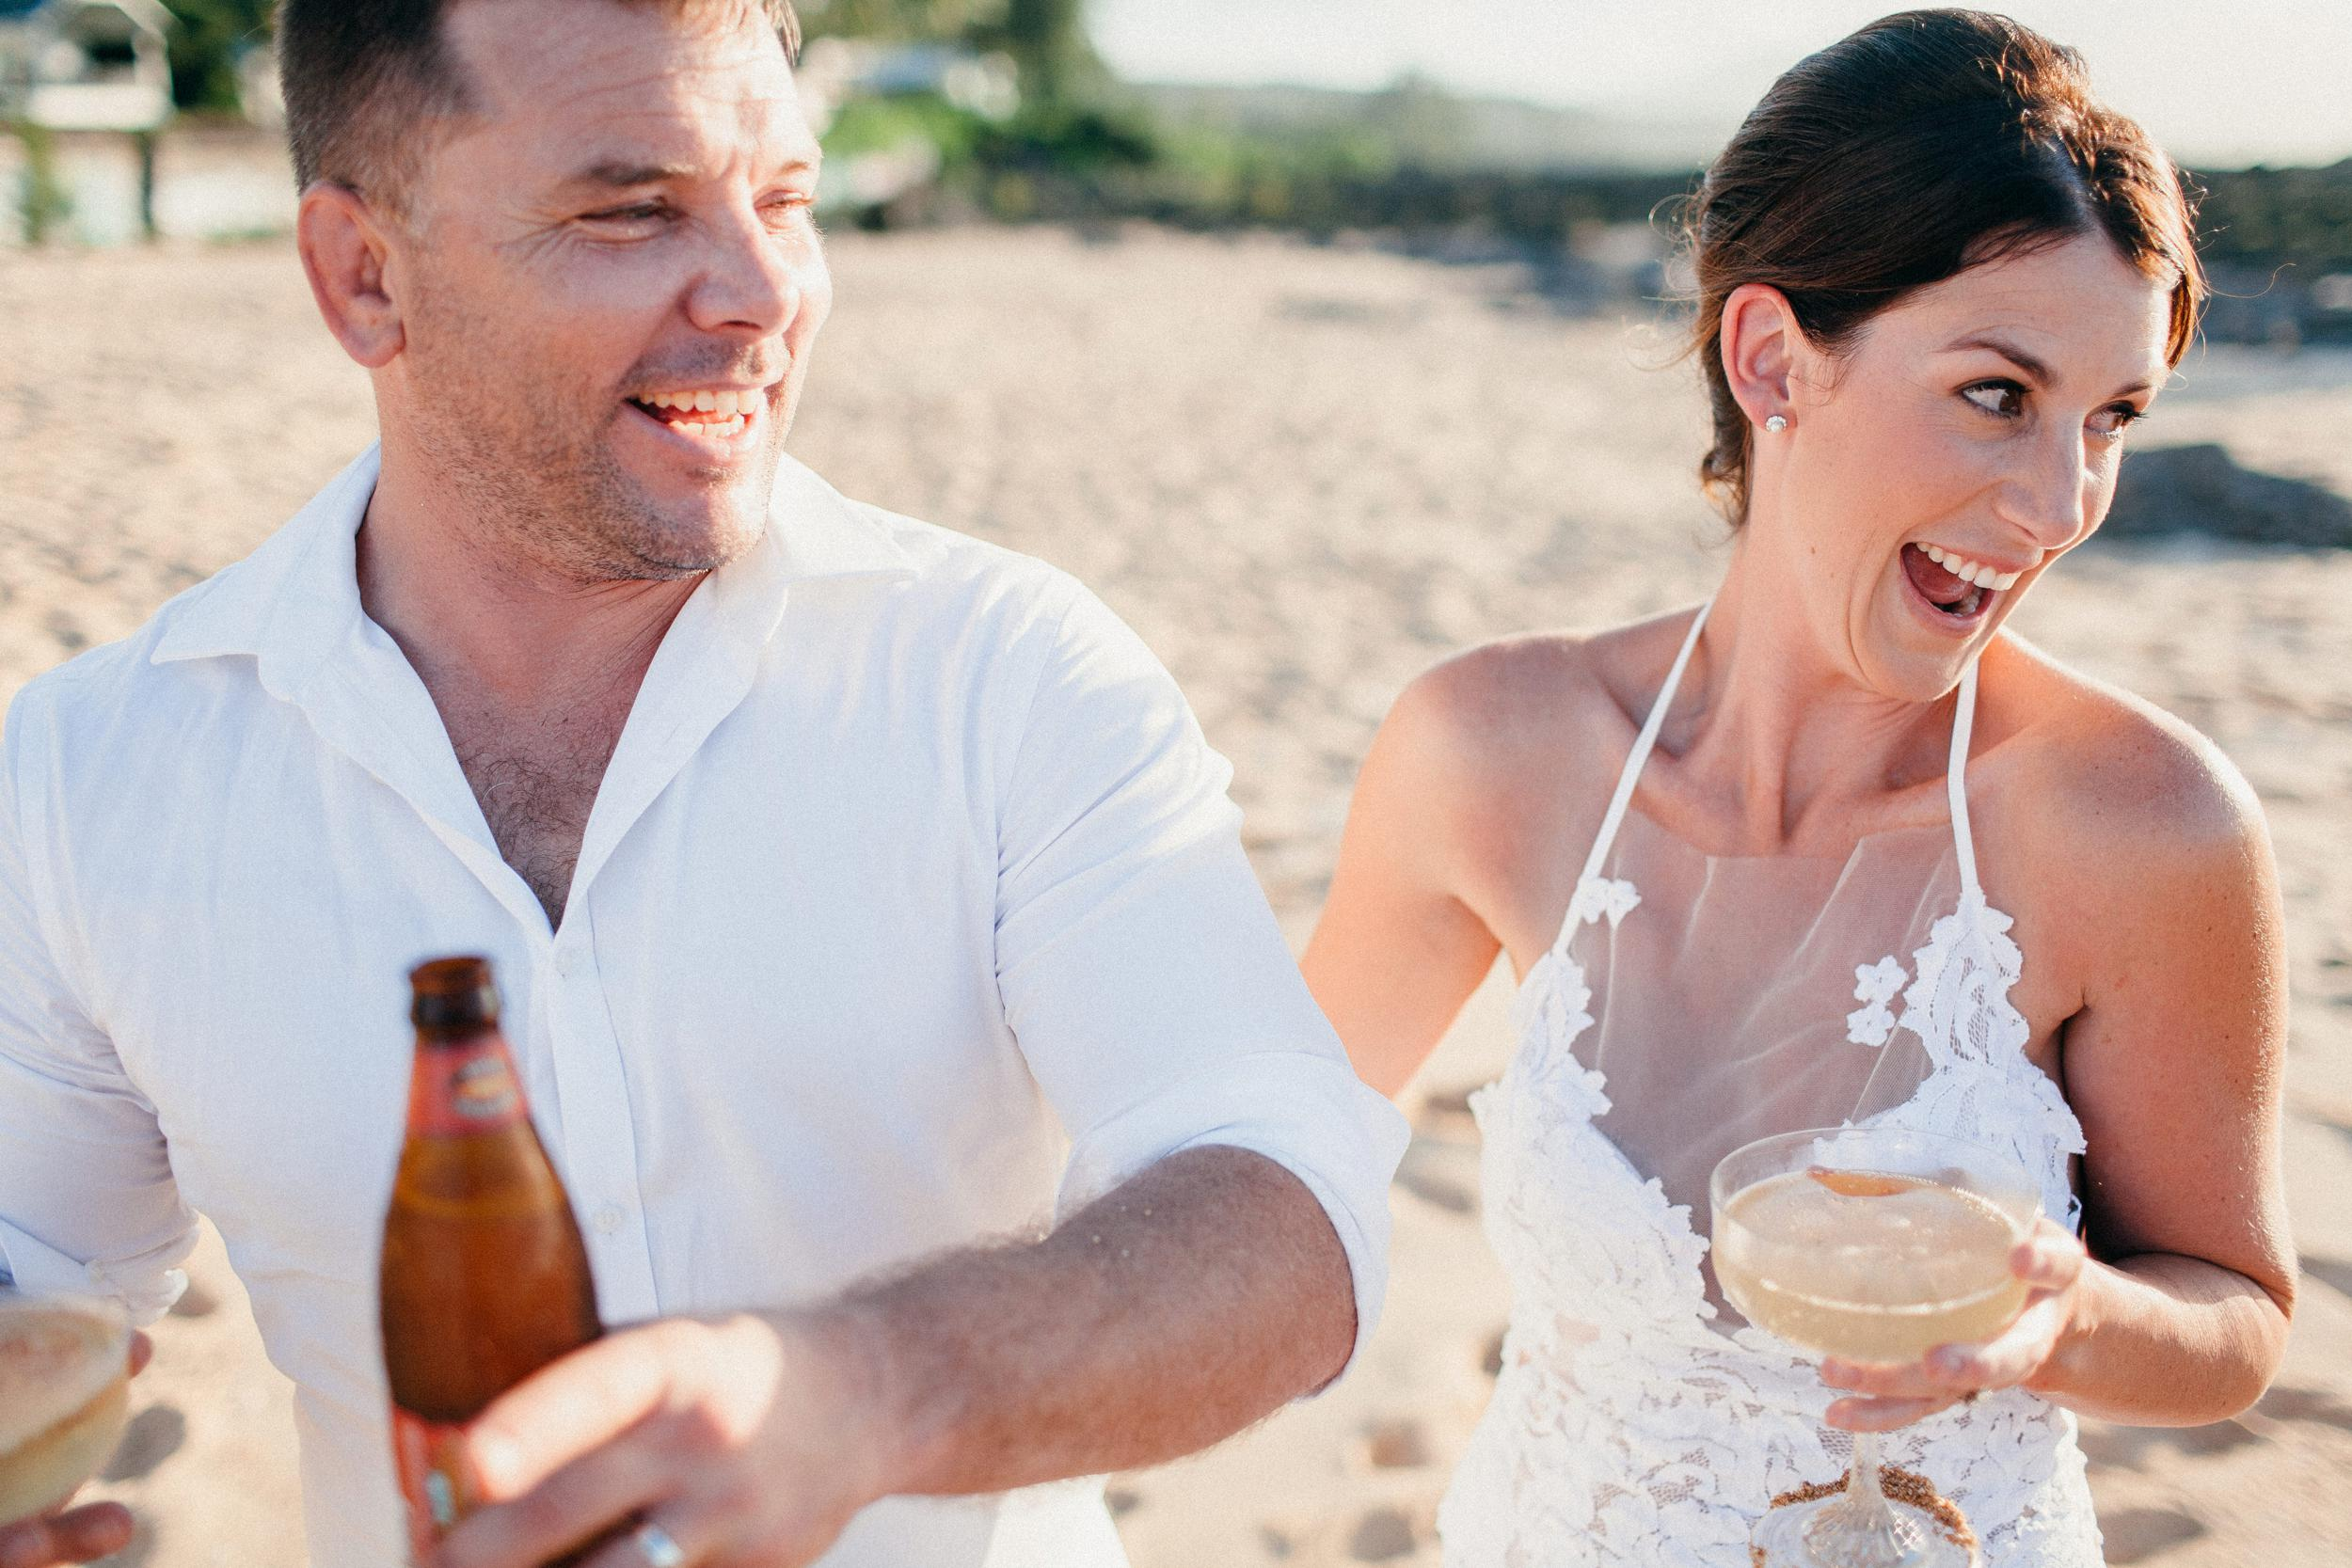 Anna & Ben share celebratory drinks after just getting married on the North Shore or Oahu